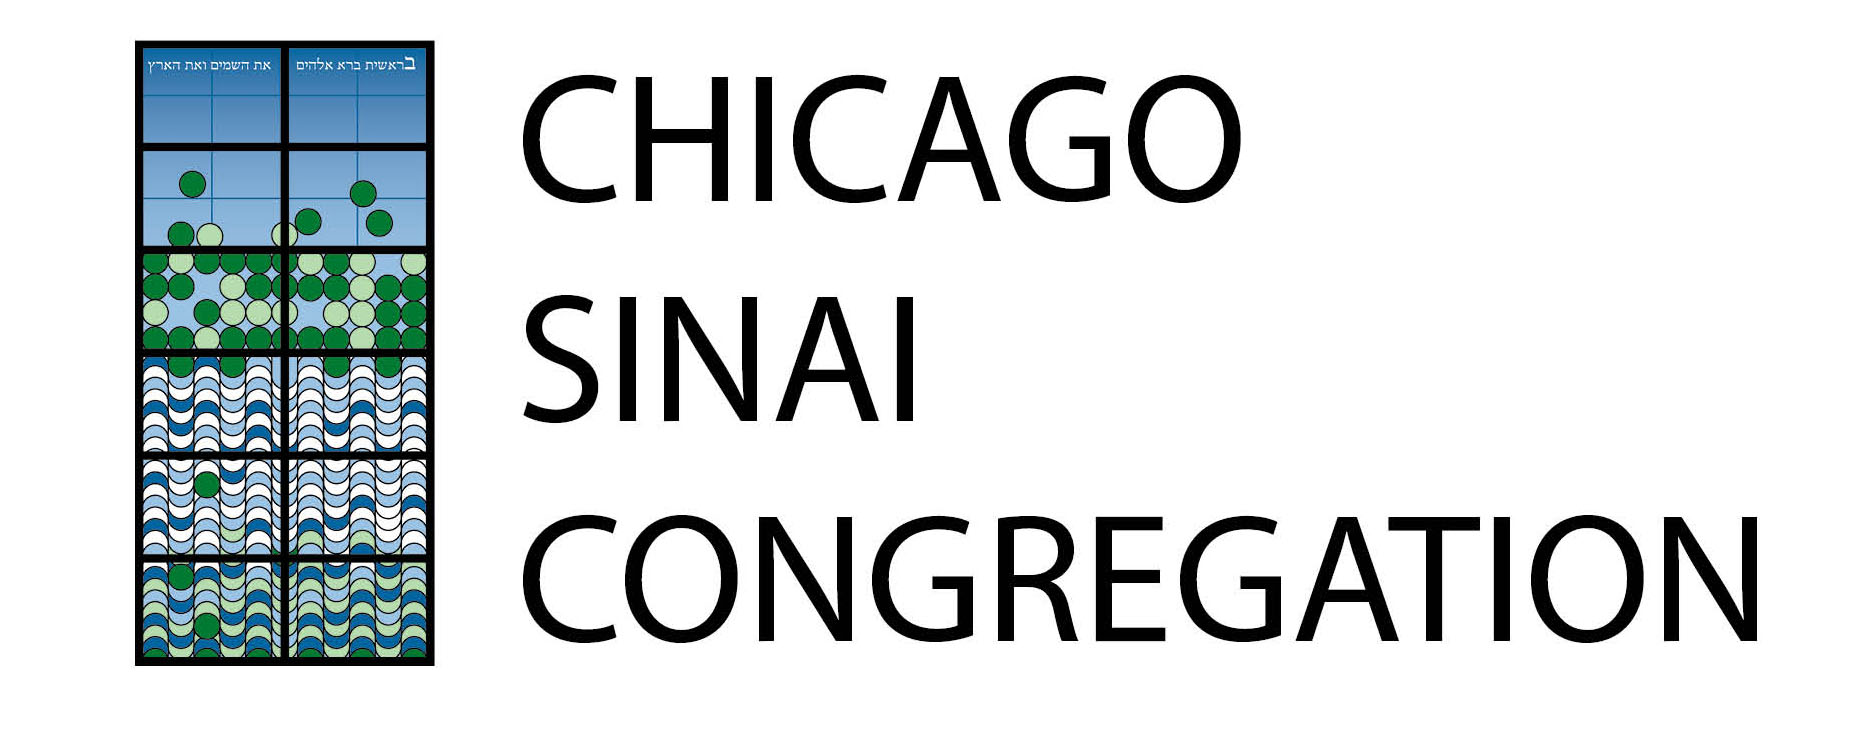 Chicago Sinai Congregation